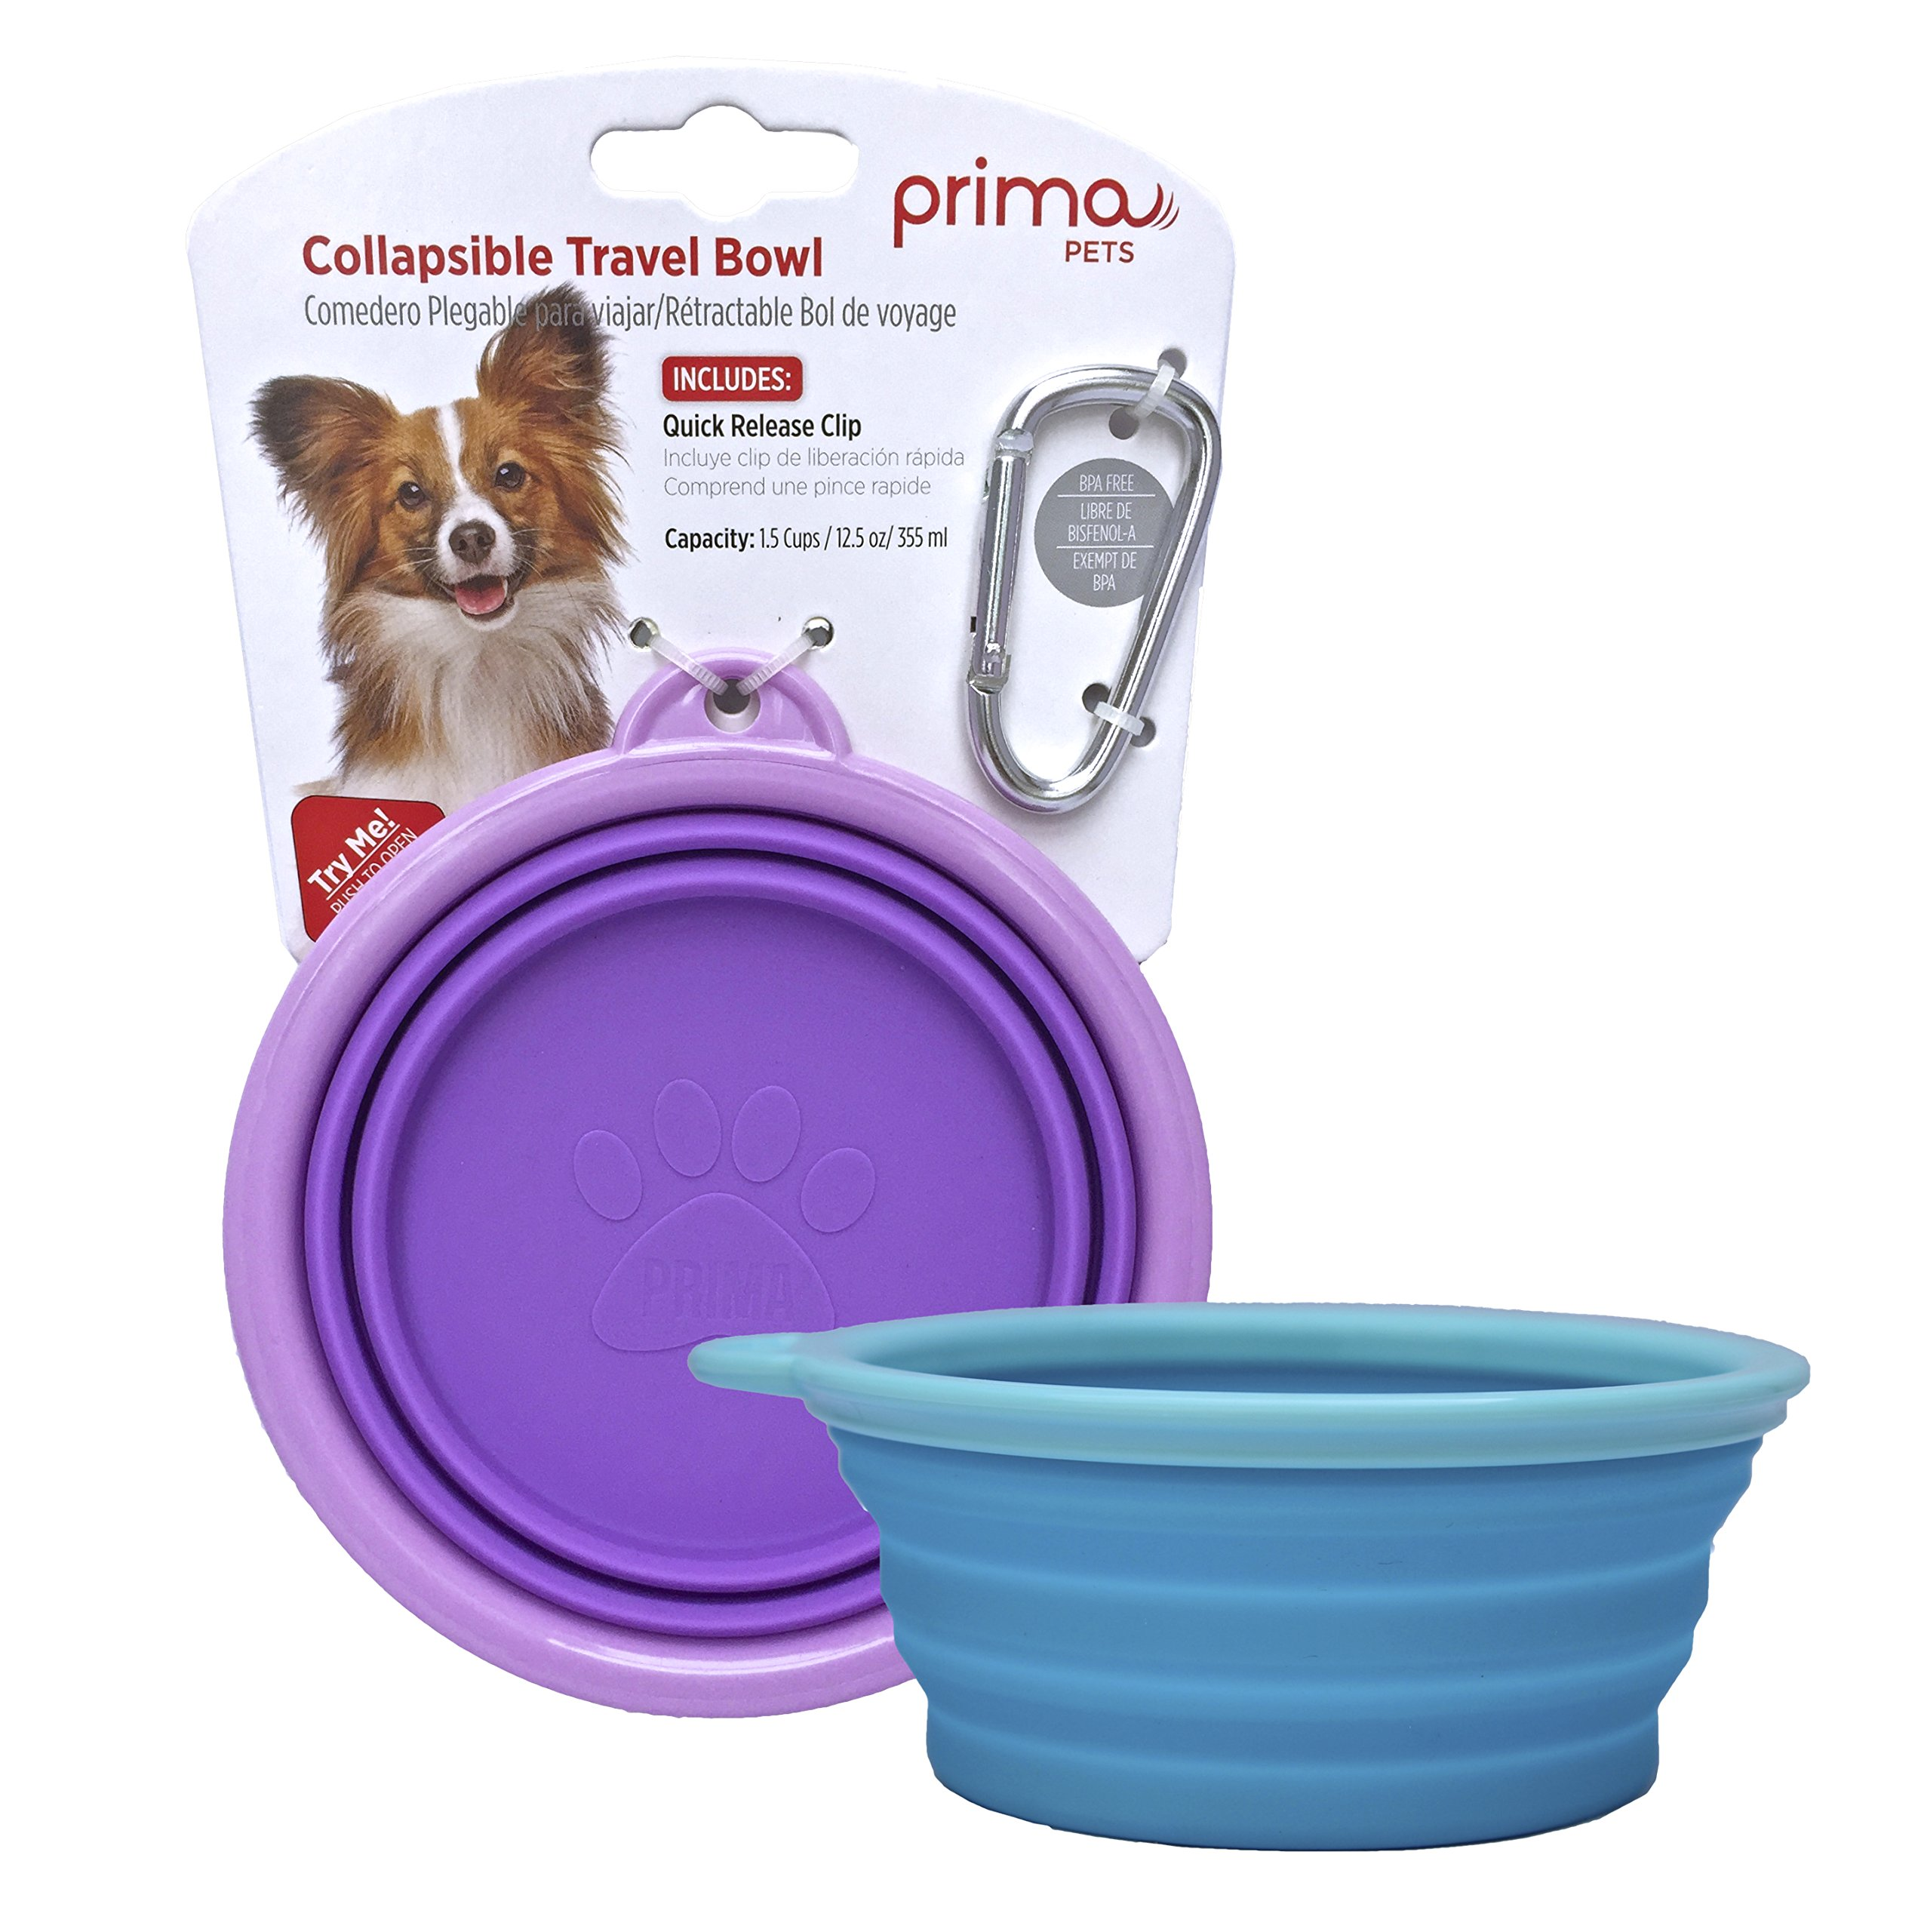 Prima Pet Collapsible Silicone Water Travel Bowl with Clip for Dog and Cat, Portable and Durable Pop-up Feeder for Convenient On-the-go Feeding – Size: SMALL (1.5 Cups) – 2 PACK AQUA & PURPLE